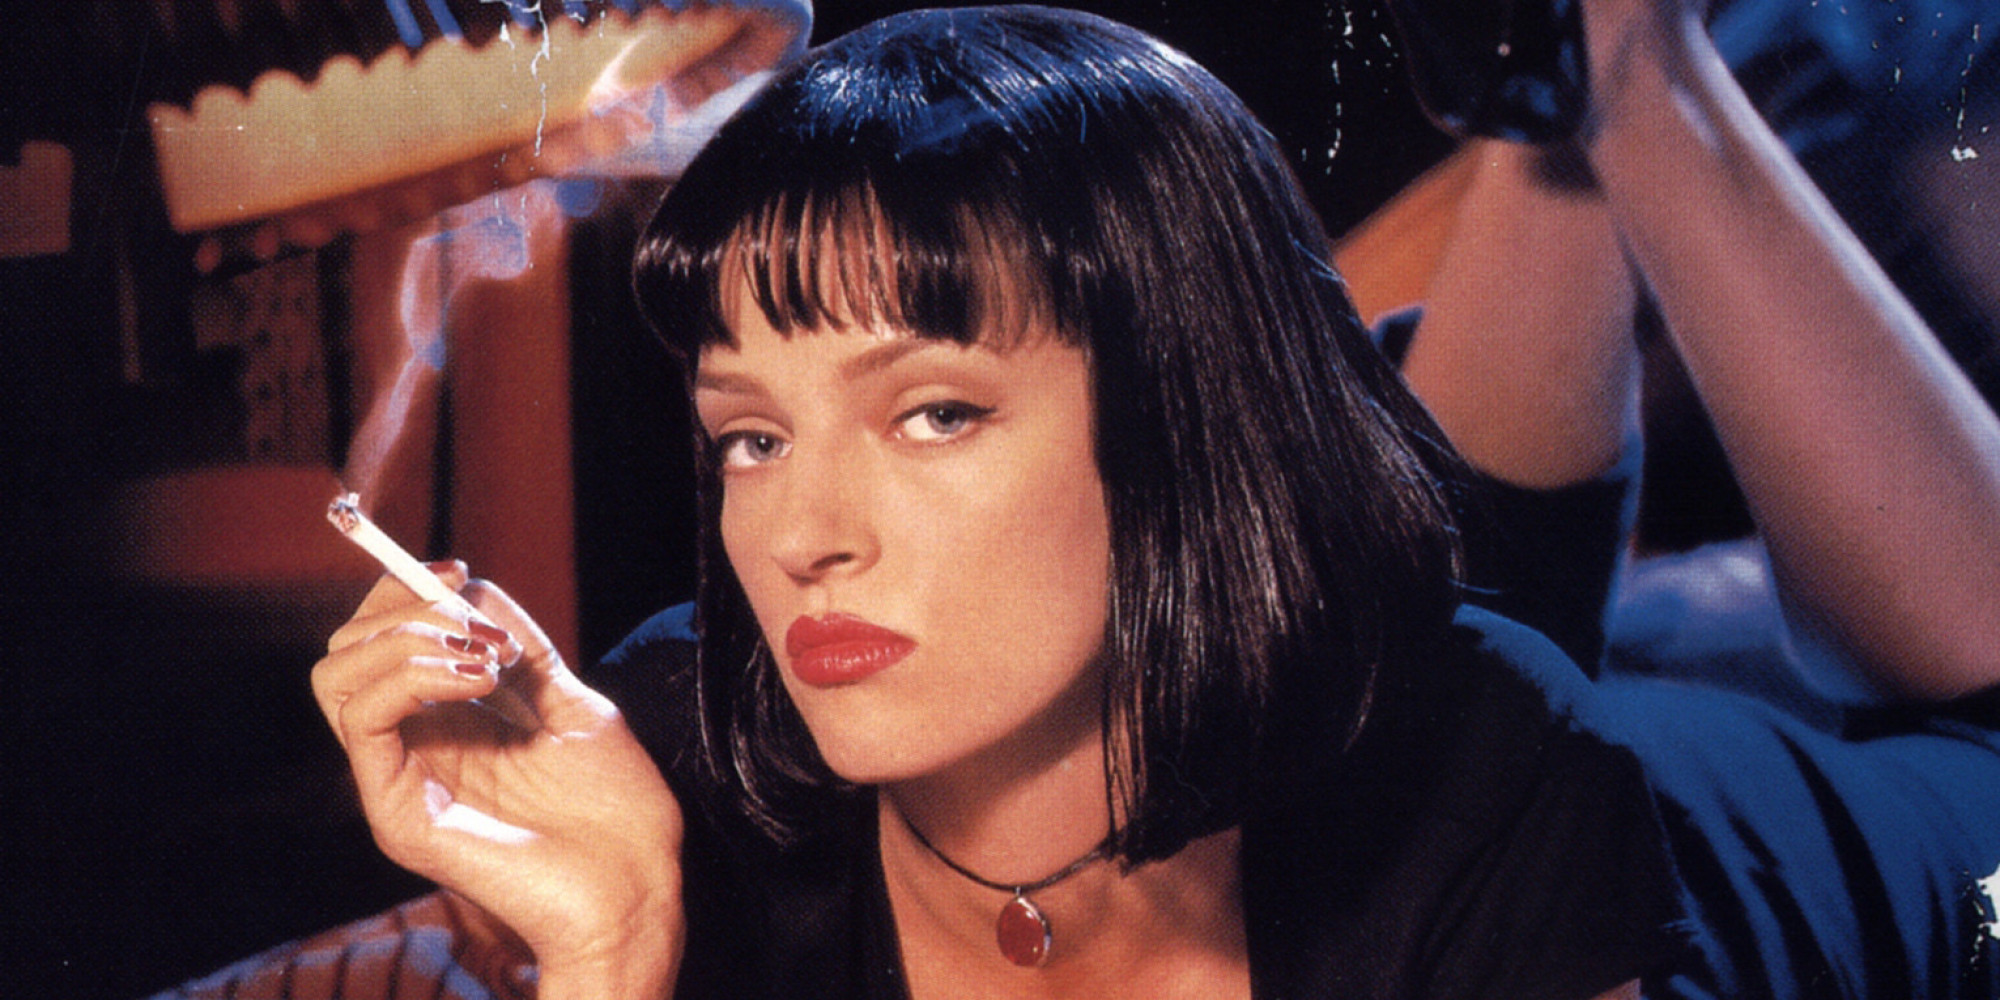 5 'Pulp Fiction' Fan Theories That Will Completely Change How You